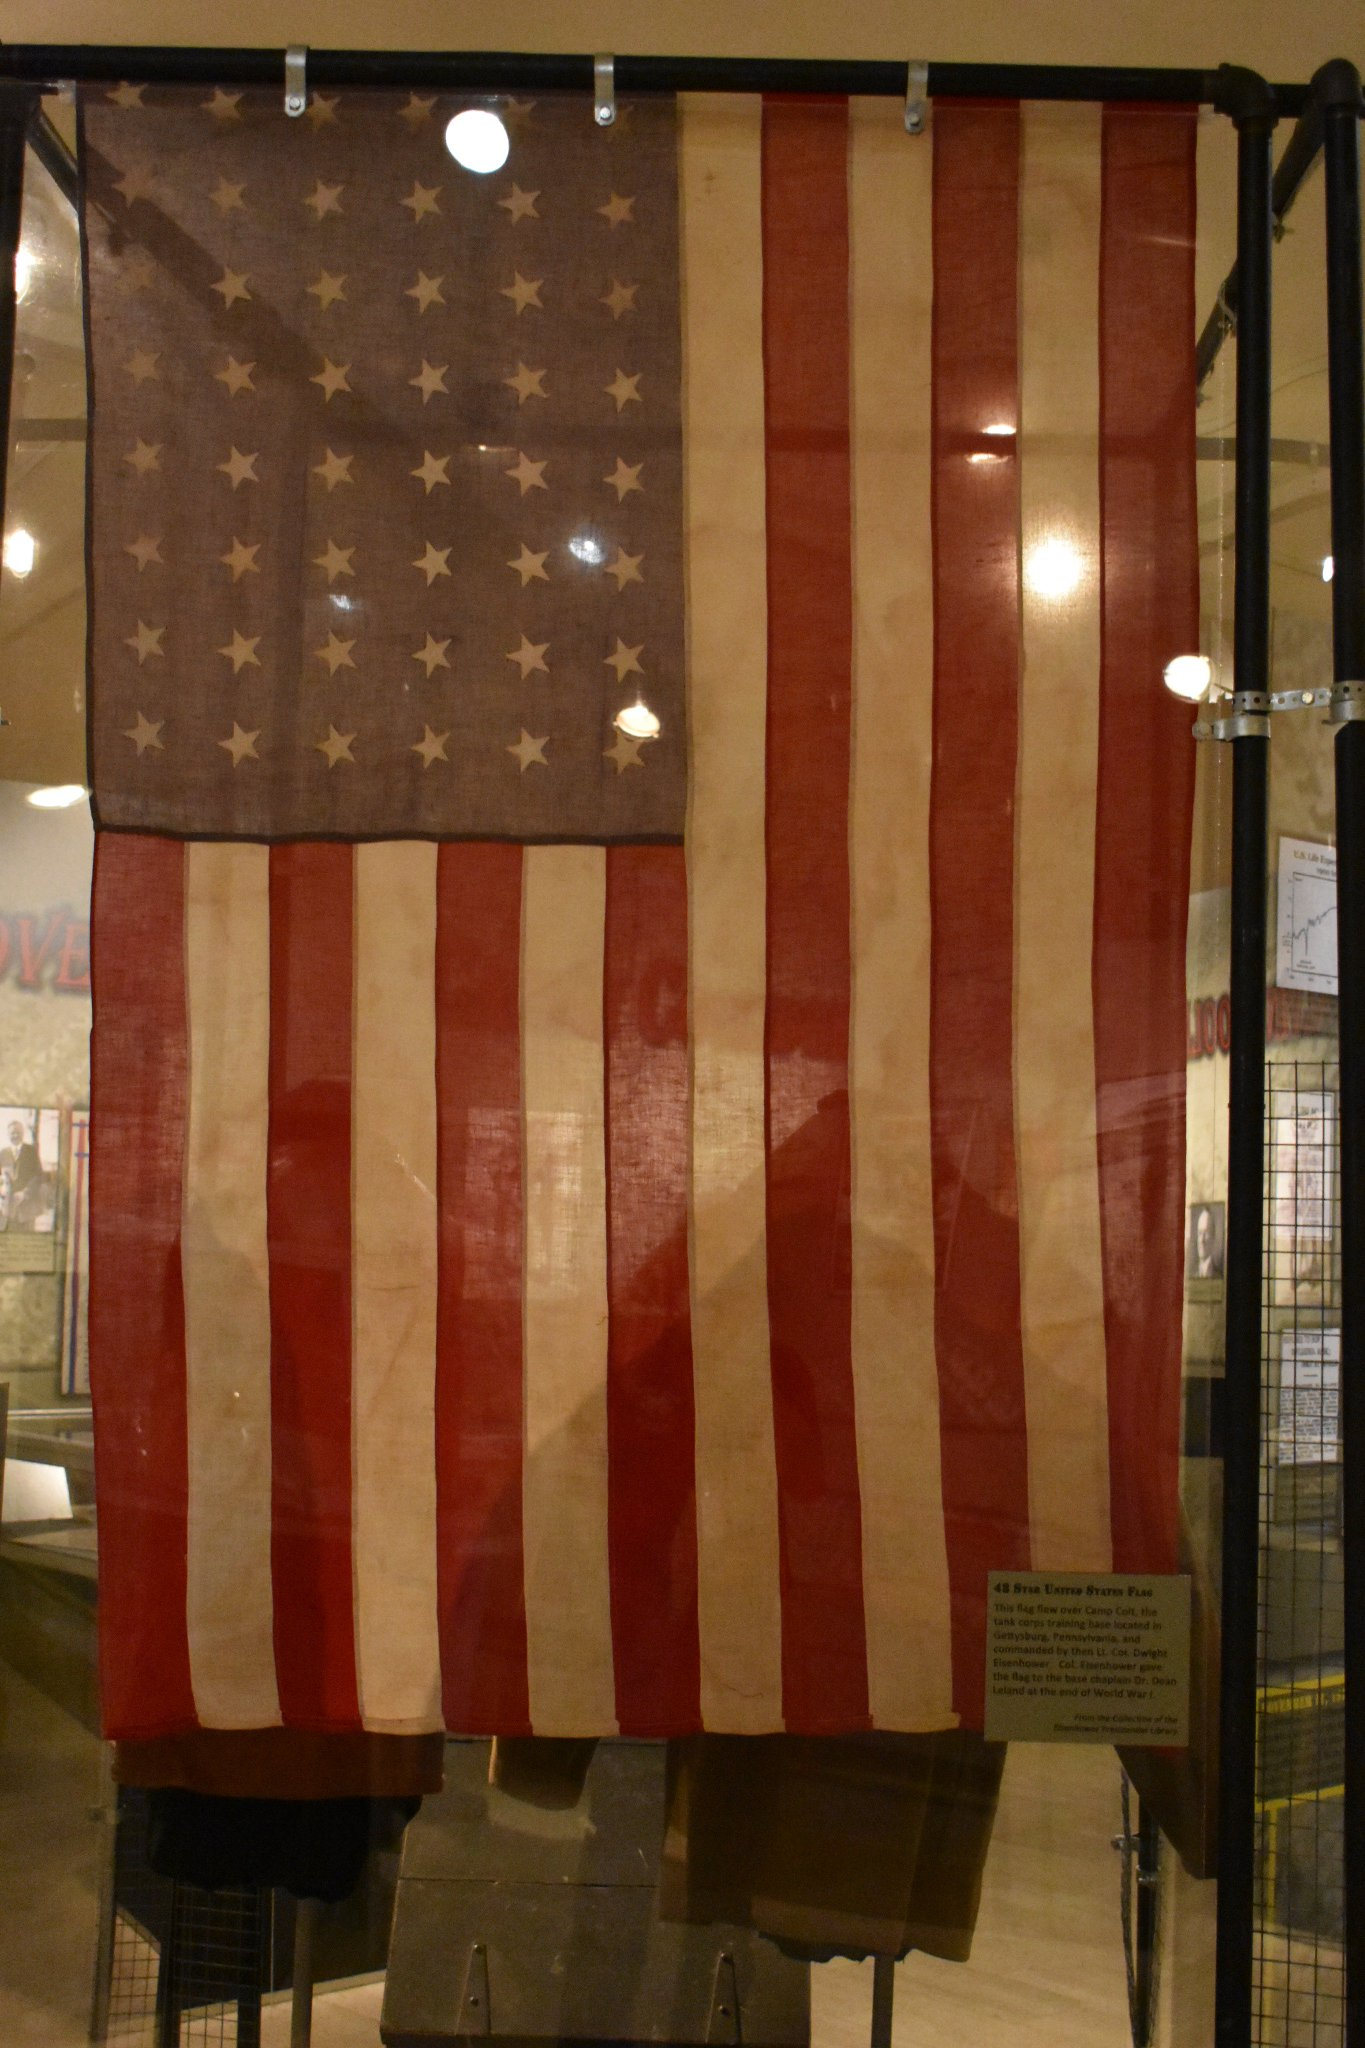 The 48 star flag that flew over Camp Colt @GettysburgNMP while under the command of Eisenhower in 1918 #WWI @OurPresidents Now on exhibit. https://t.co/zJ1UC2f4eX